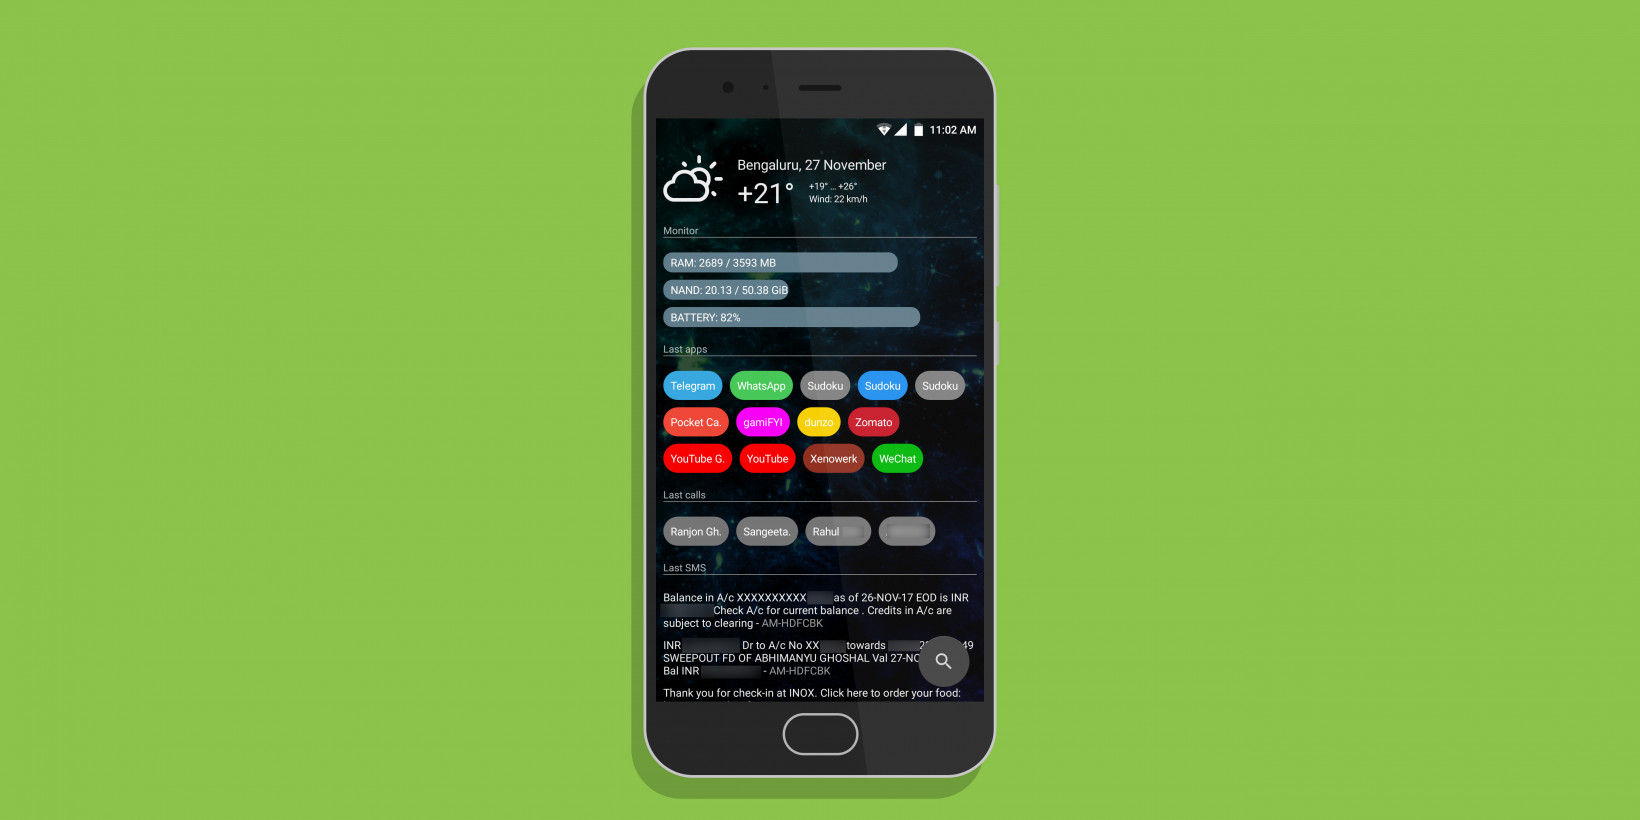 This launcher will delight Android fans who favor function over form